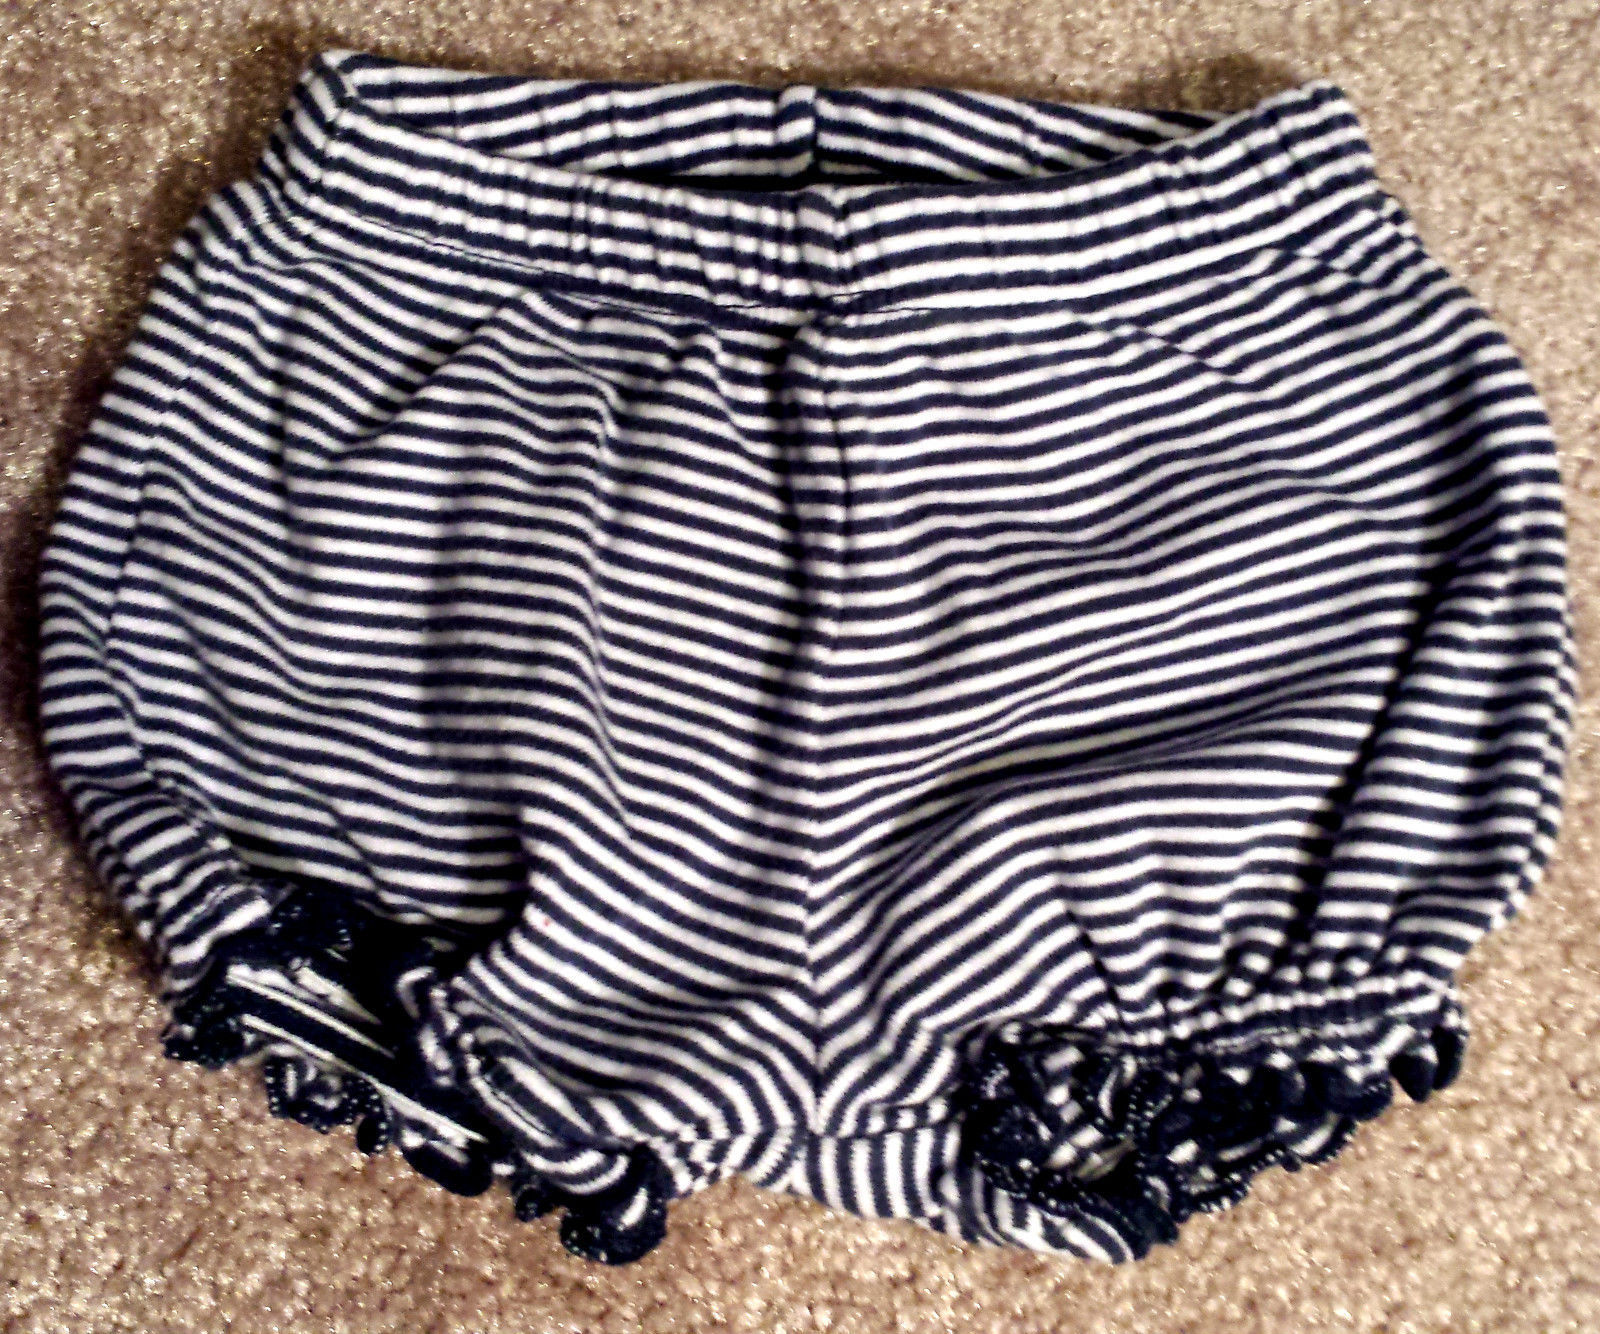 Girl's Size 3 M 0-3 Months 2 Pc Carter's Black/ White Striped Dress & Bloomers